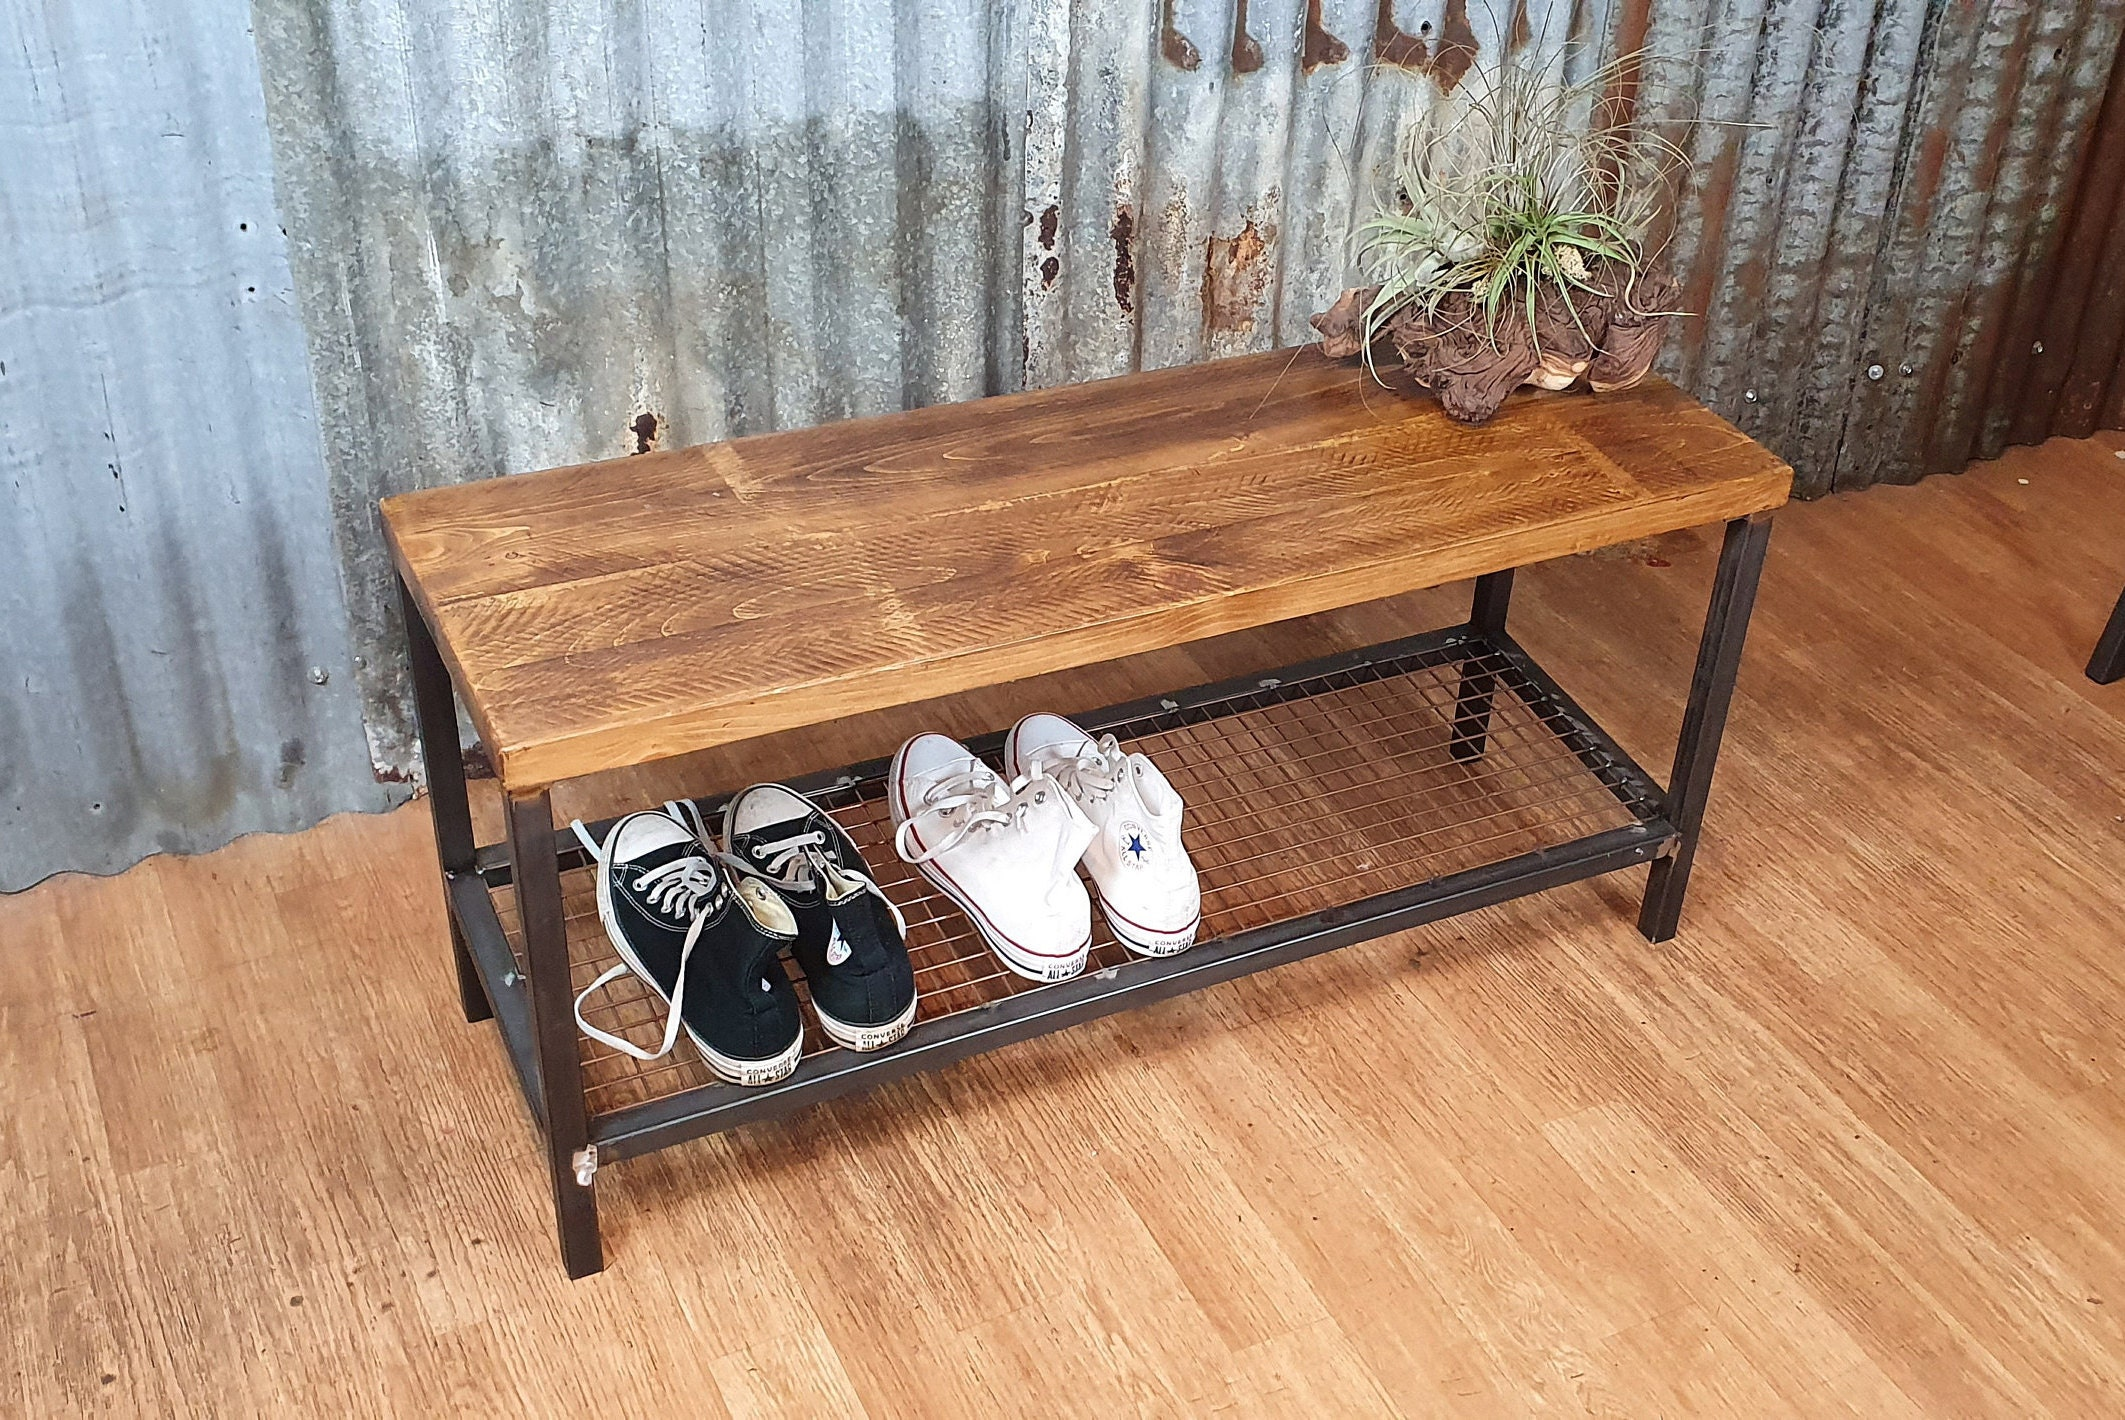 Wooden Shoes Storage Bench Rack Organizer Entryway Seat Home Furniture Coffee US